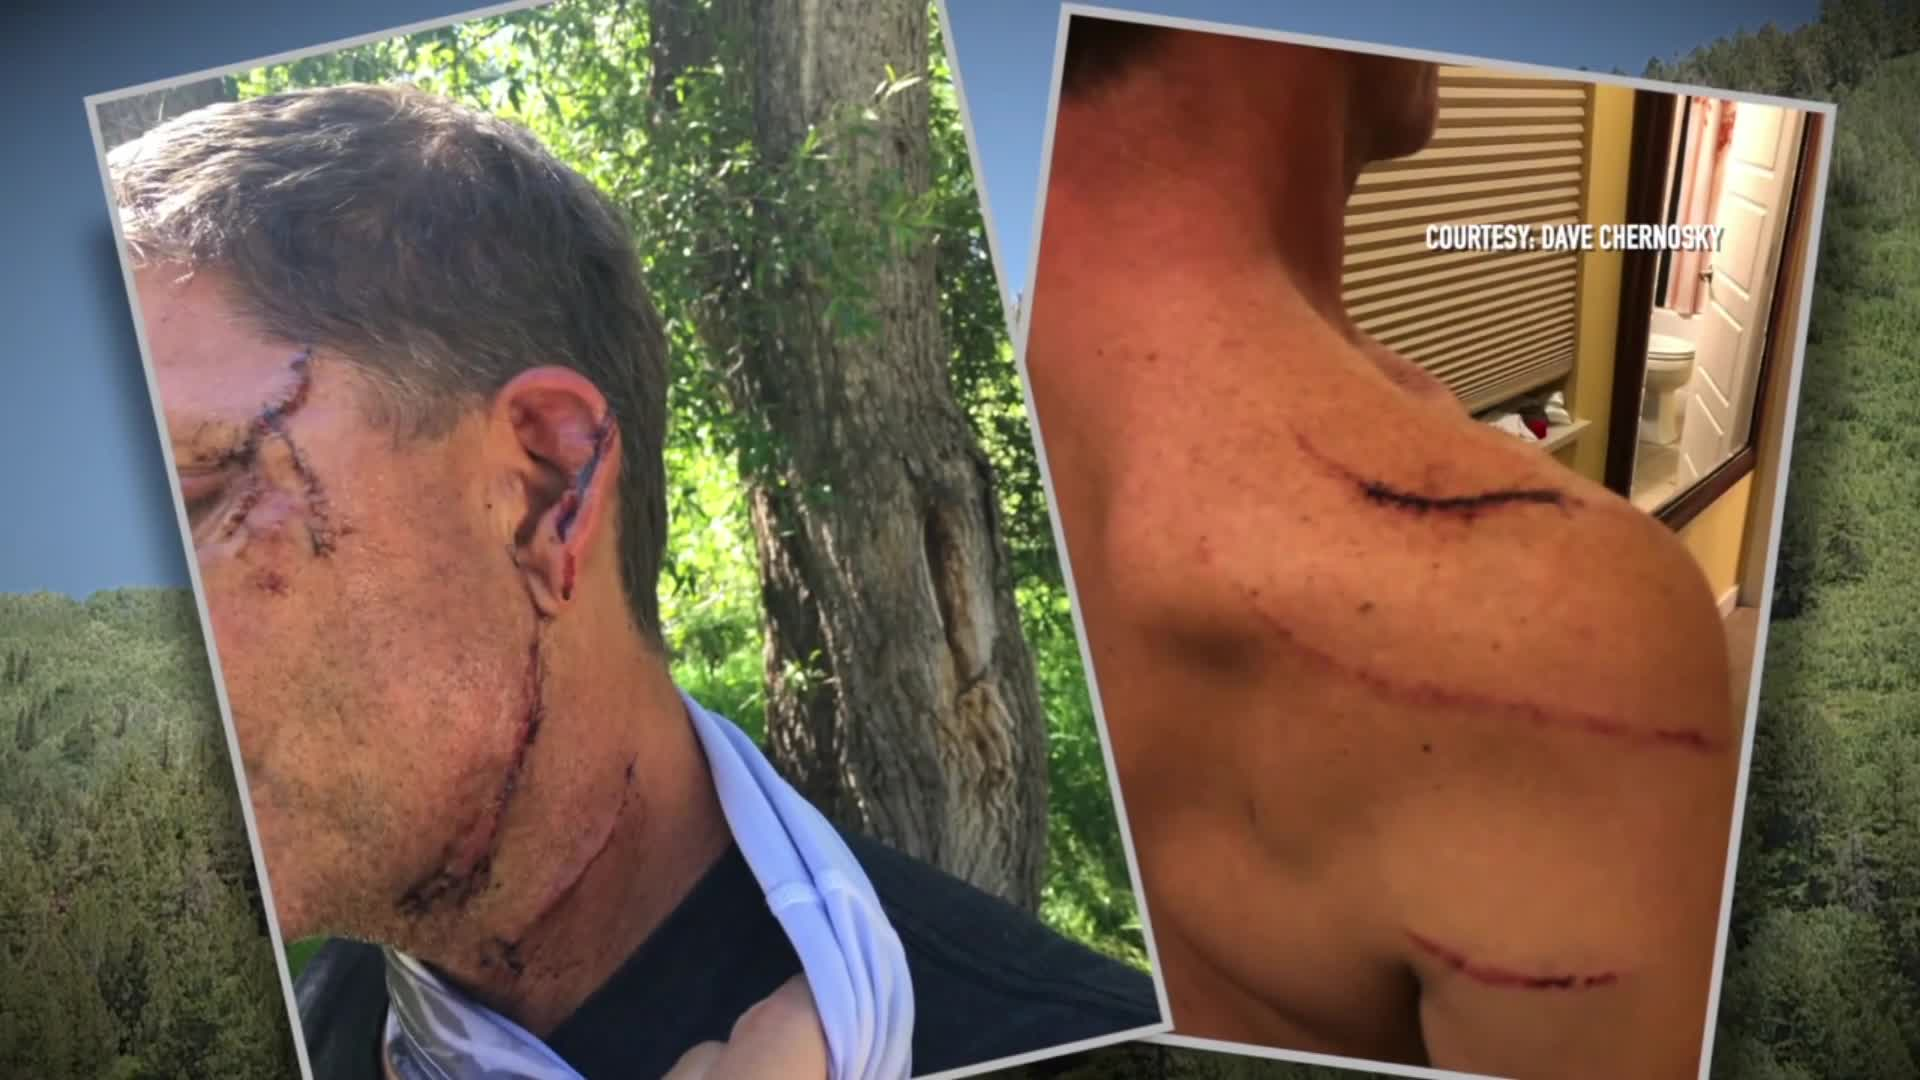 Man recounts terrifying moment he was attacked by a bear in home